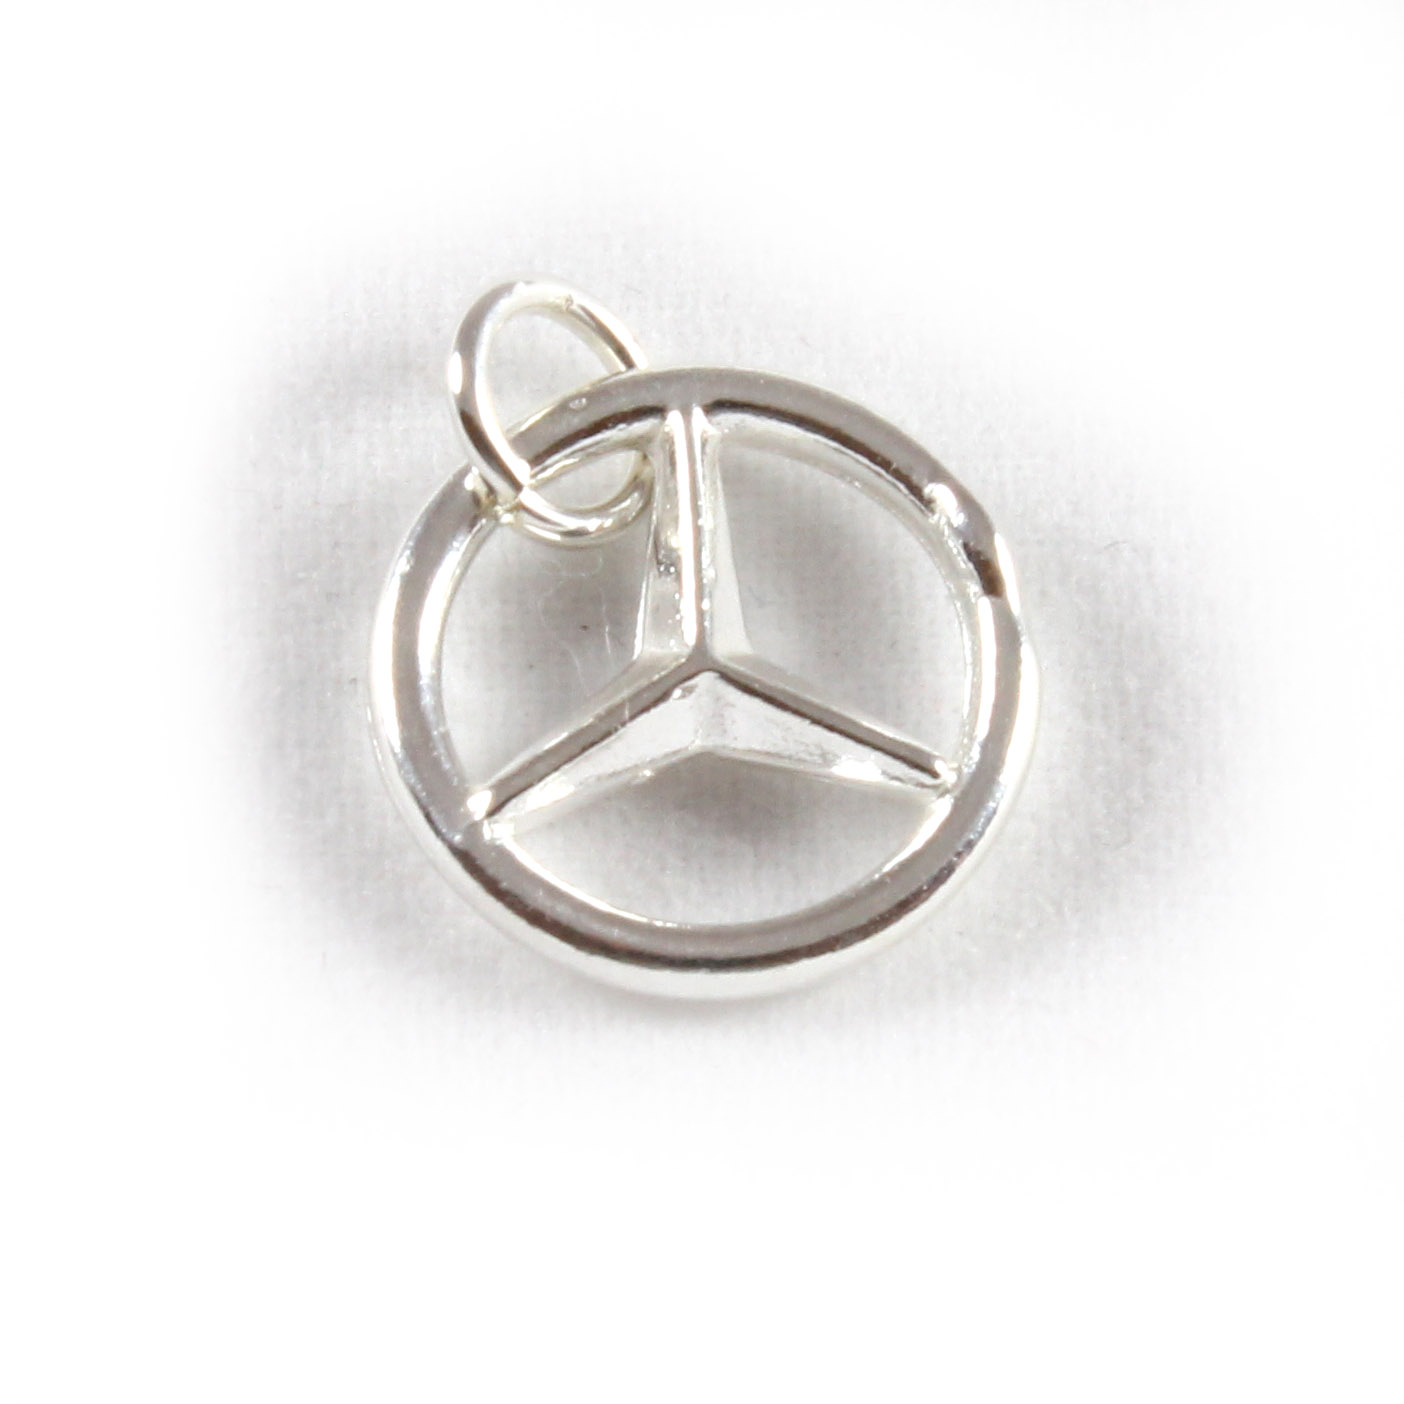 Mercedes benz symbol charm 3d sterling silver charms ebay for Mercedes benz charm